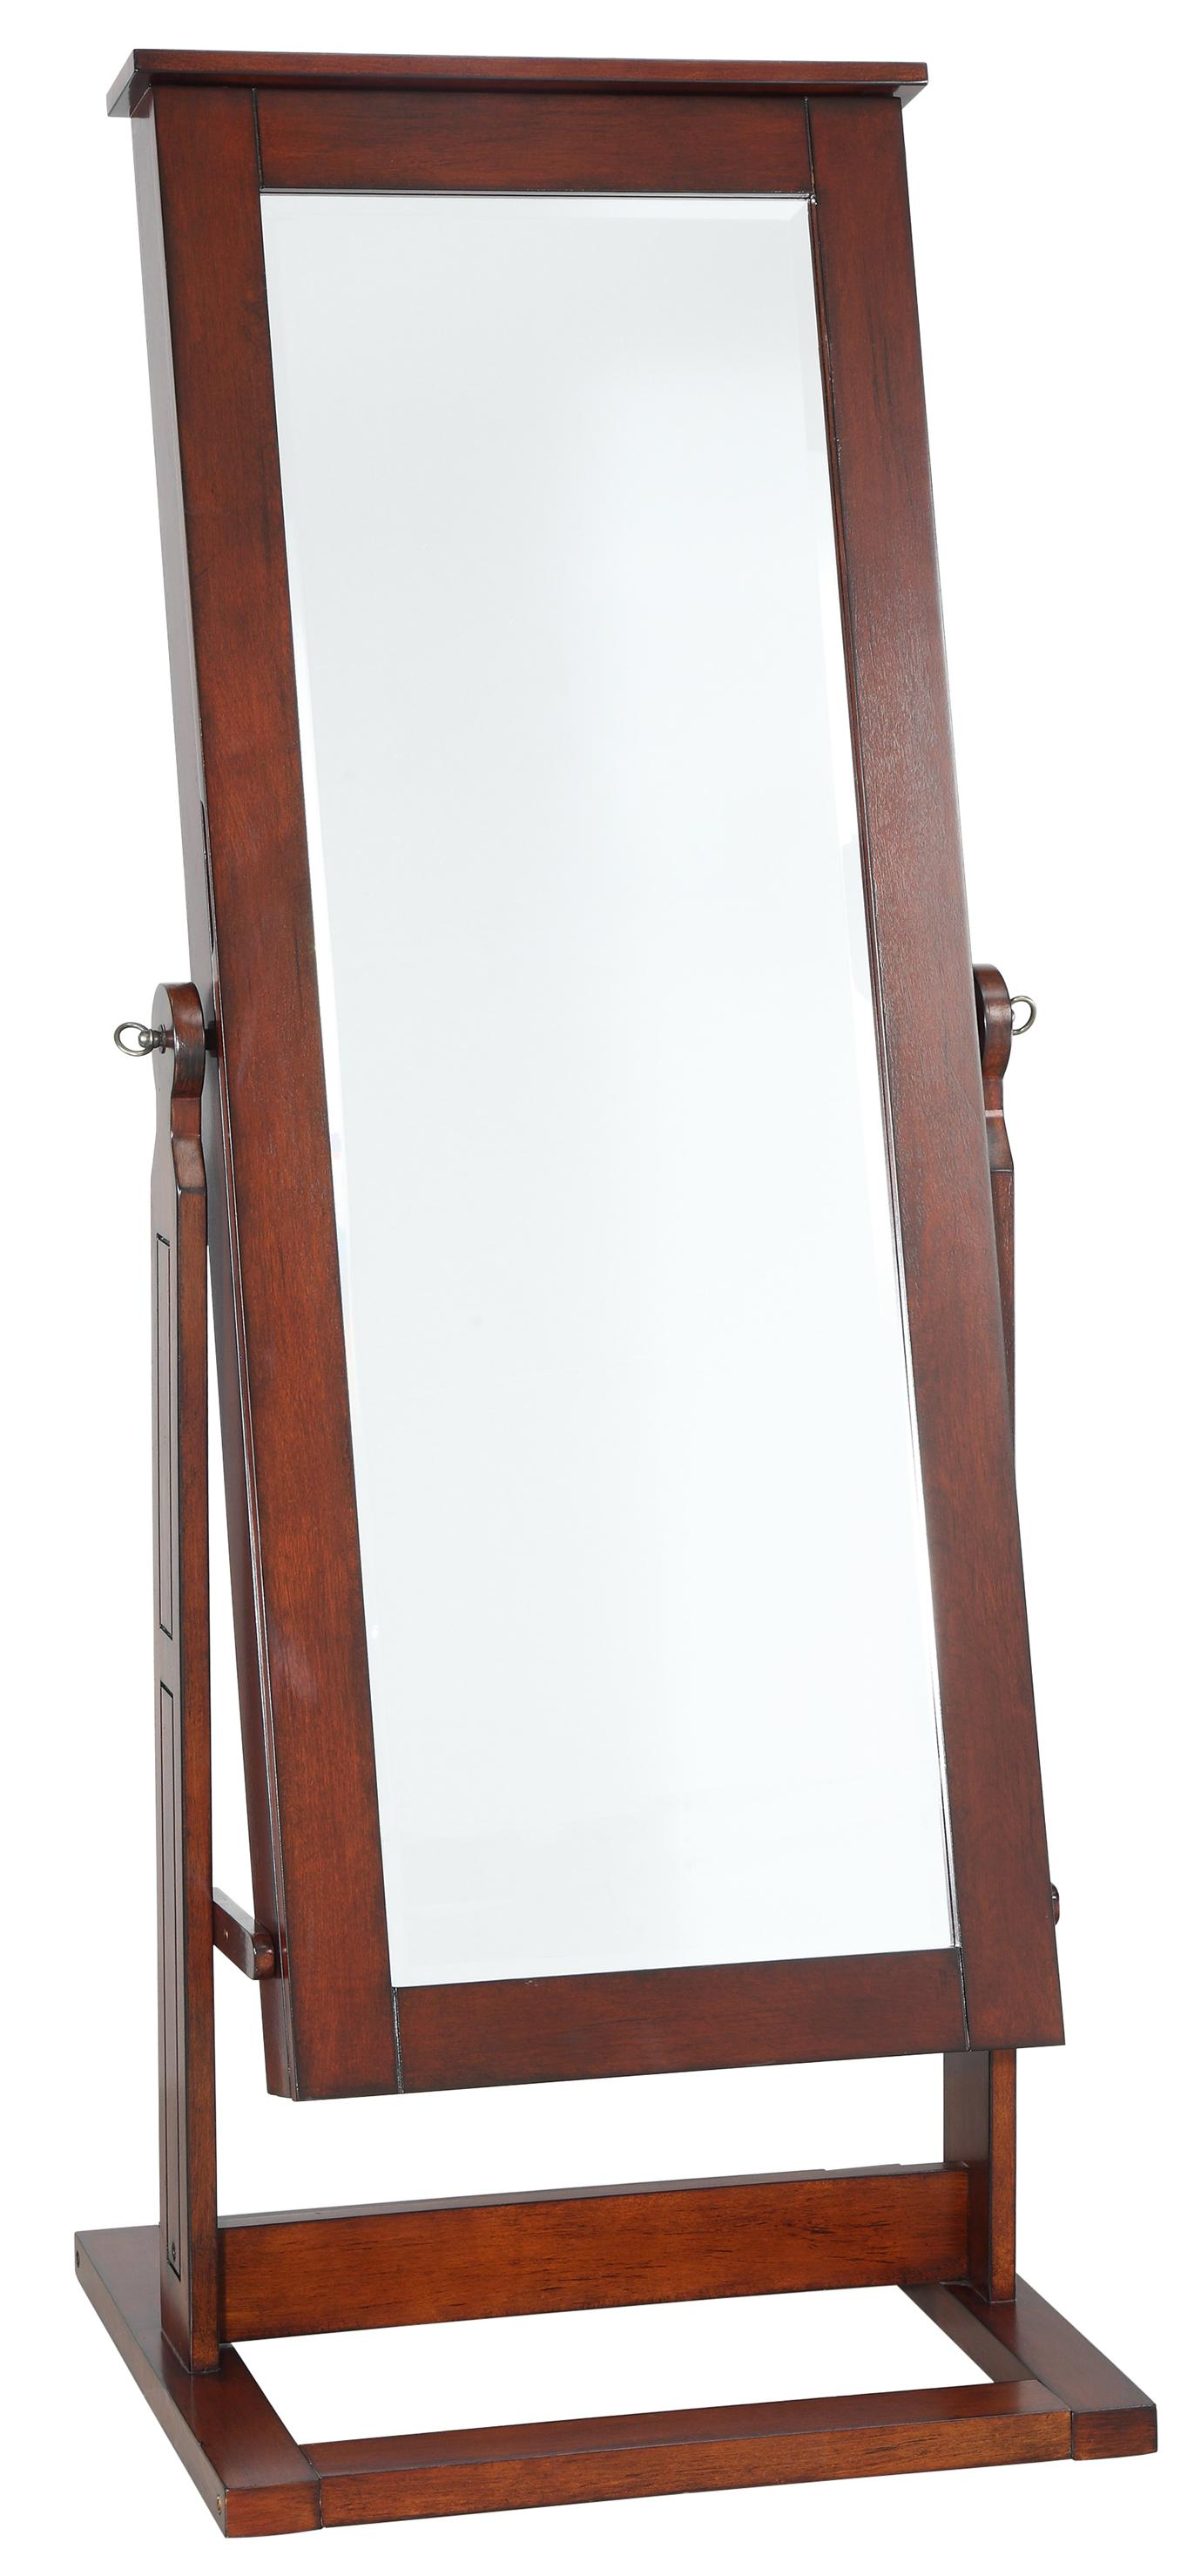 Powell Jewelry Armoire Walnut Cheval Jewelry Wardrobe - Item Number: 597-514